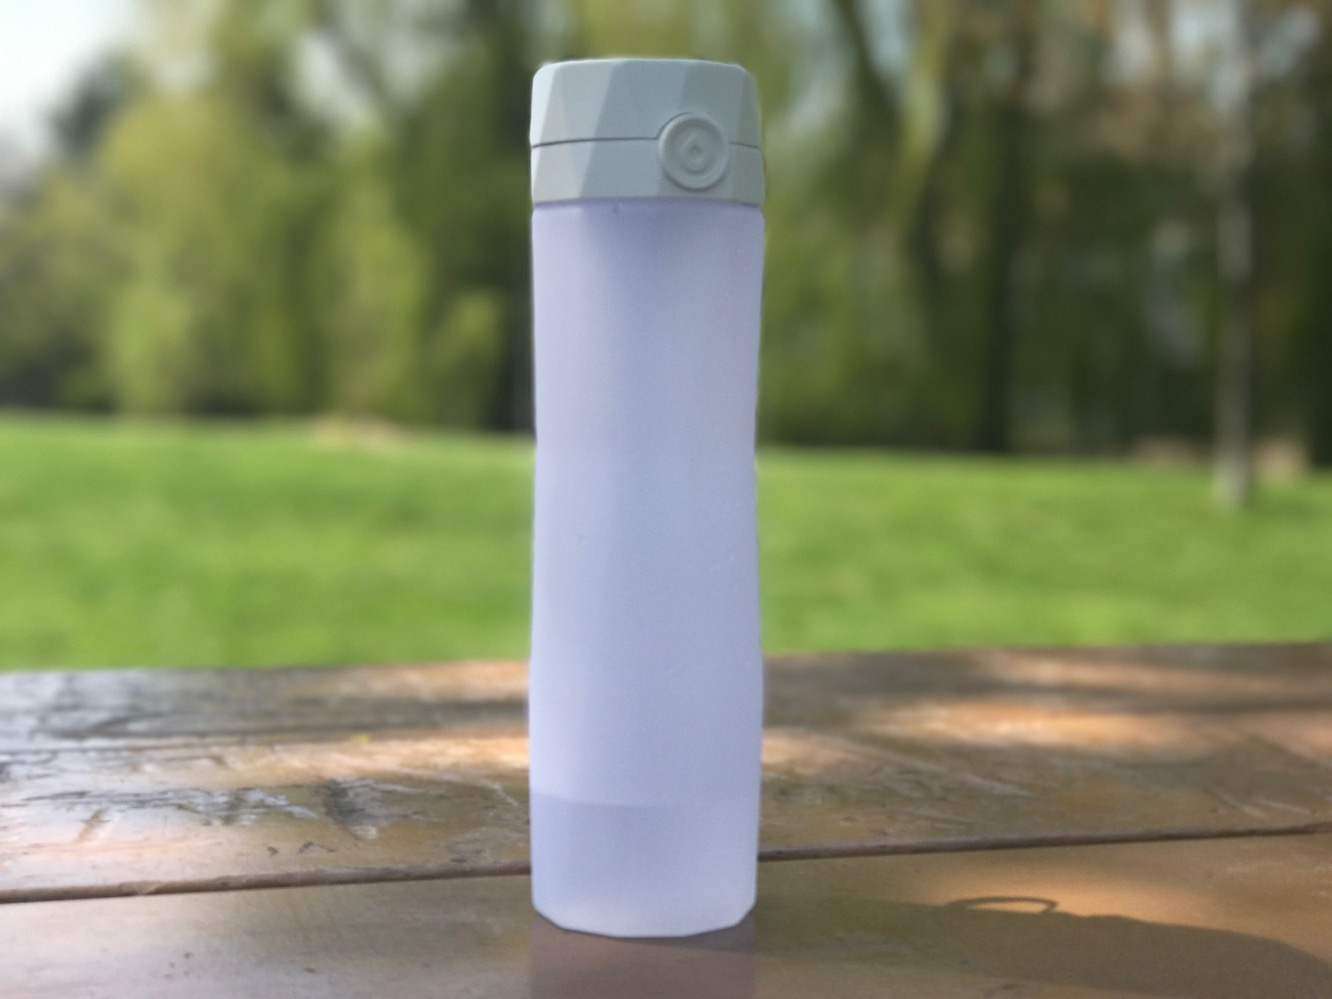 Review: Hidrate Spark 2.0 Smart Water Bottle